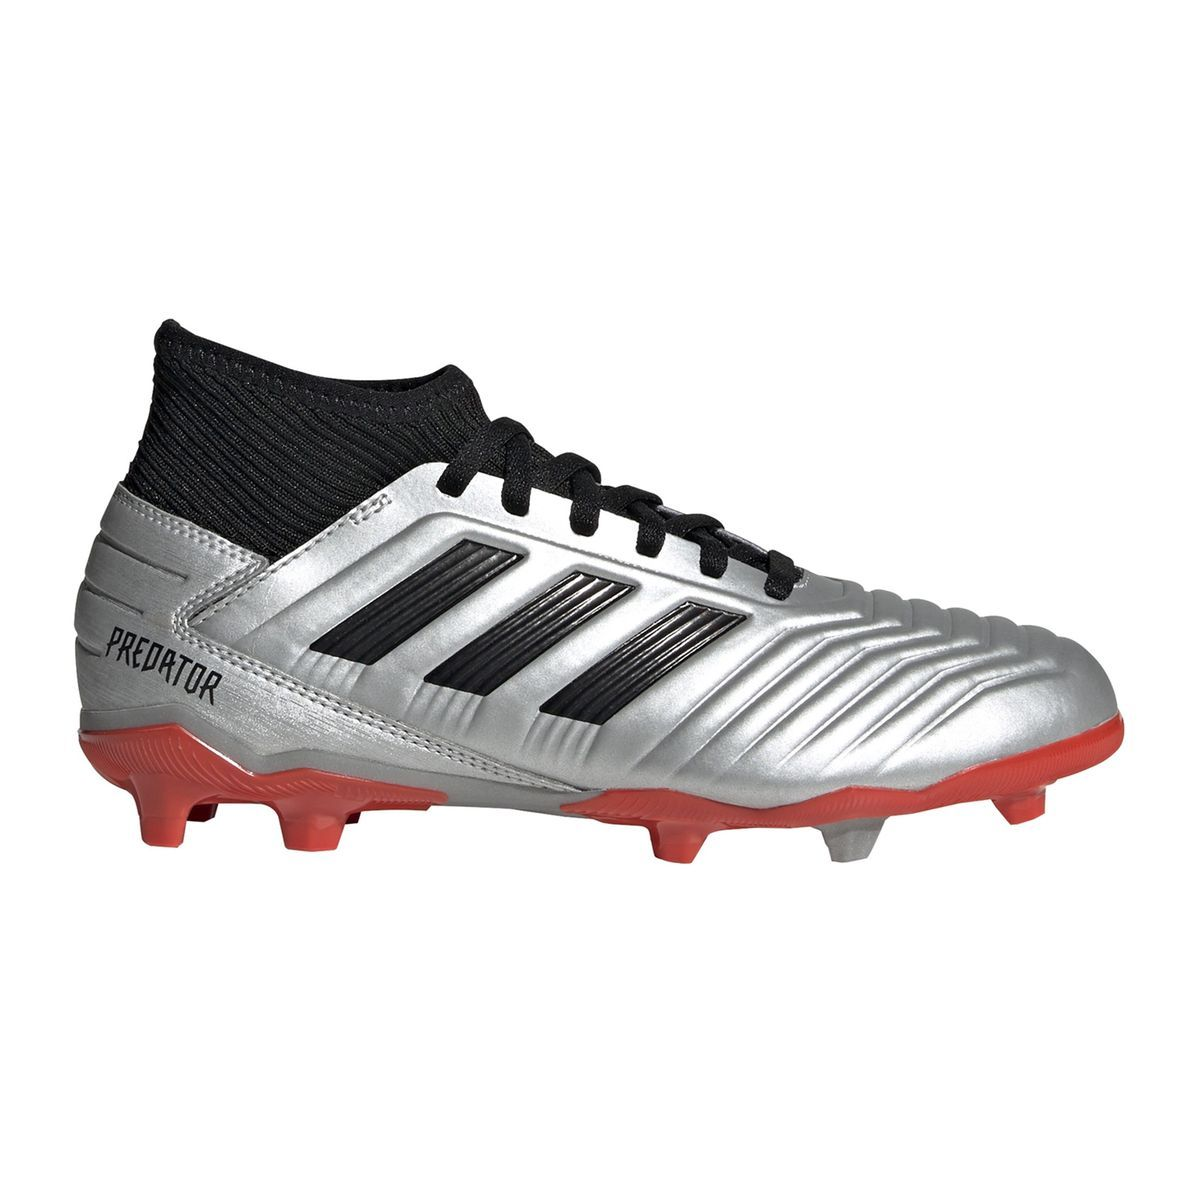 latest design new cheap crazy price Chaussures Football Predator 19.3 Fg Gris - Taille : 37 1/3 ...